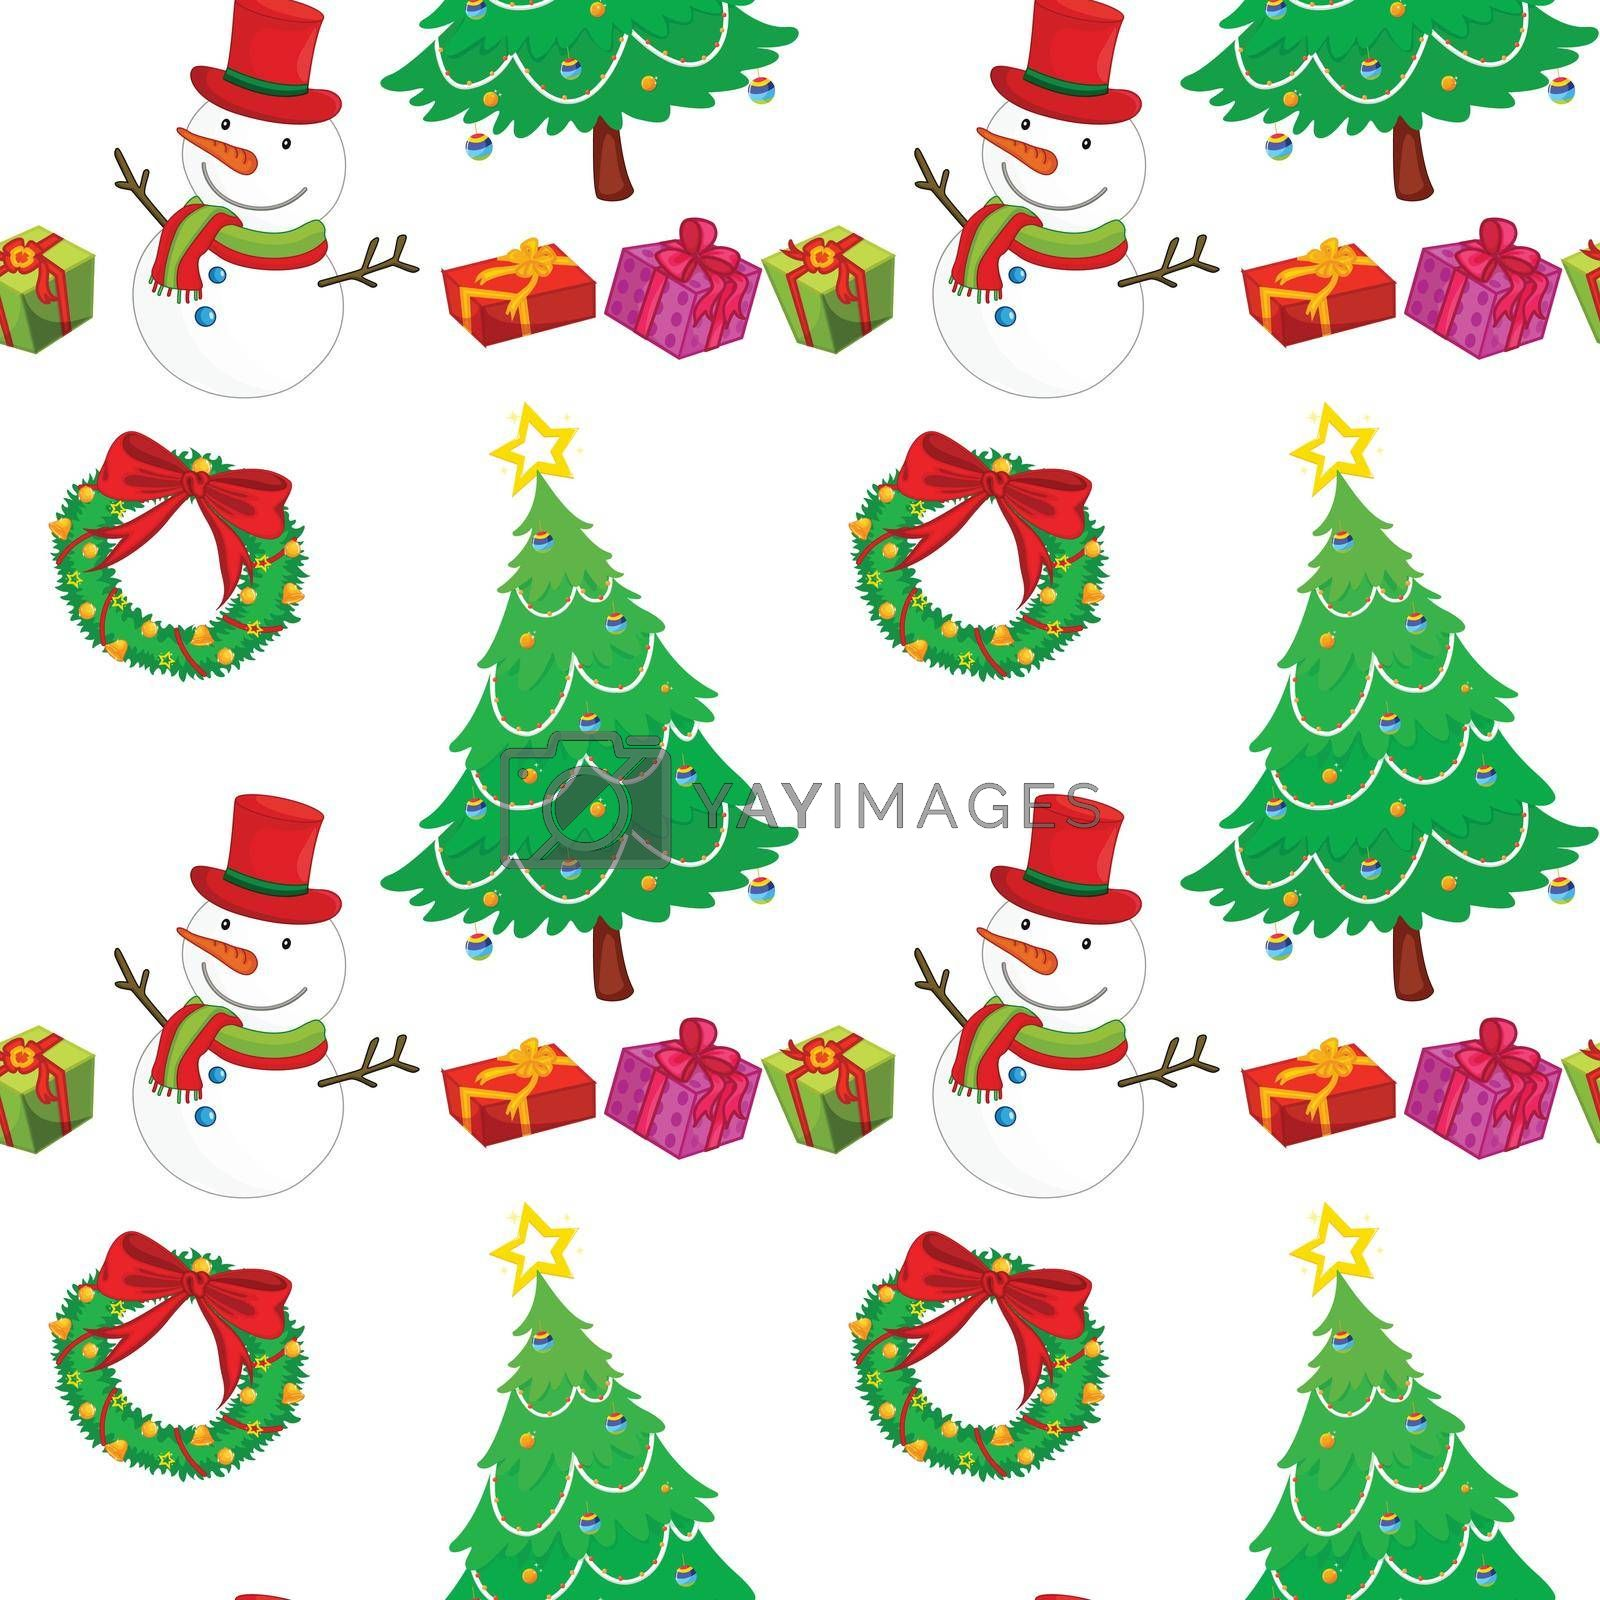 Royalty free image of christmas celebration accessories by iimages